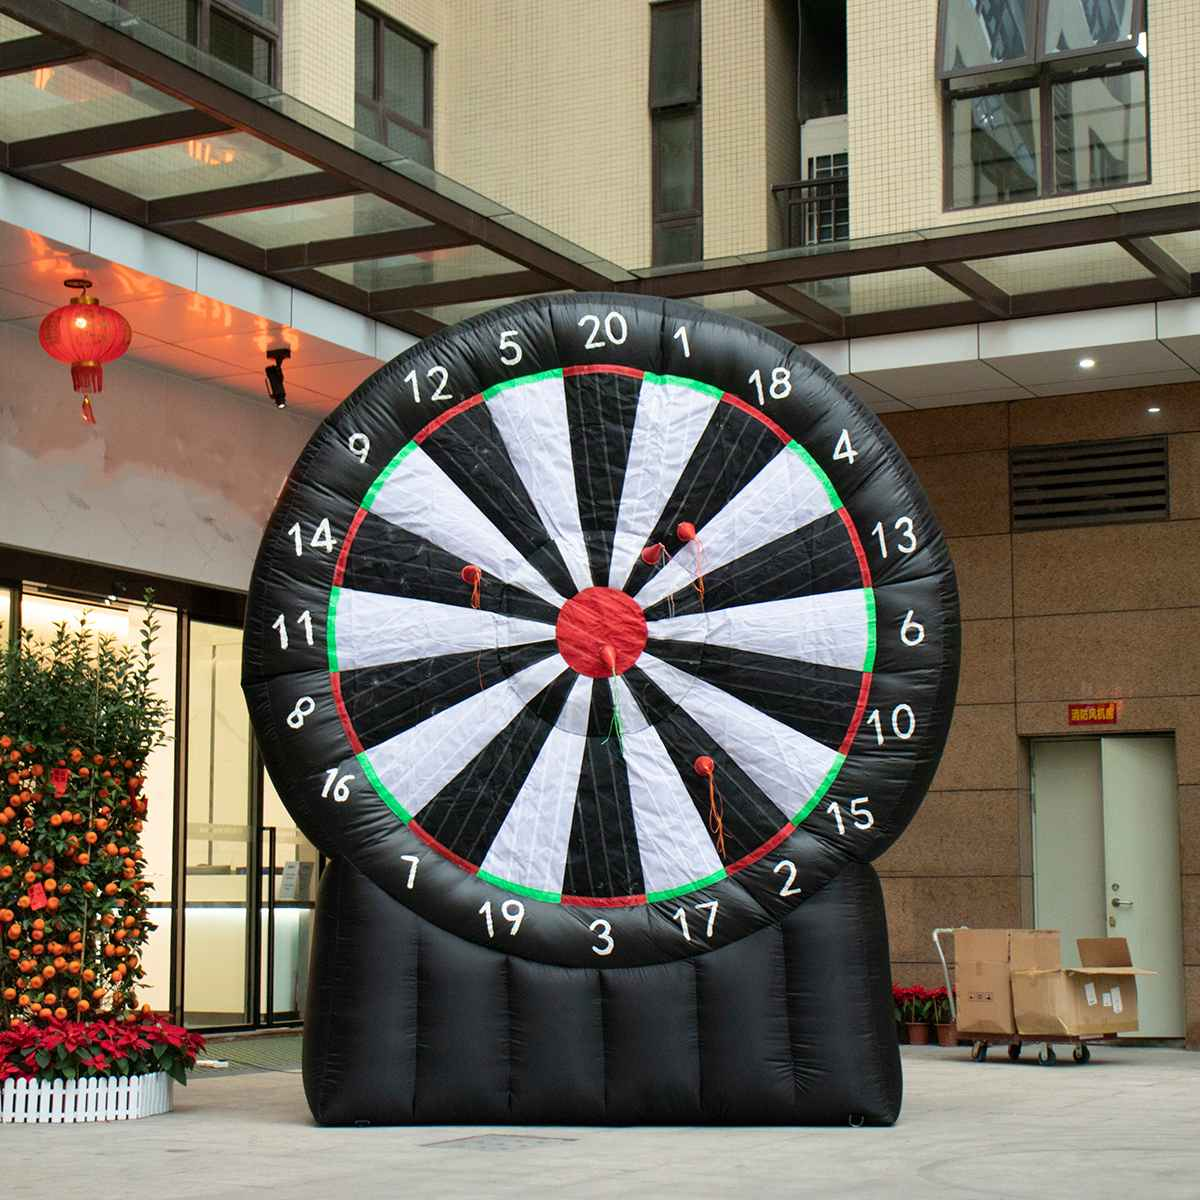 4 Meter Giant Inflatable Dart Board With Air Blower 220V Outdoor Durable Game Oxford Fabric Throwing Sport Games Inflatable Toys4 Meter Giant Inflatable Dart Board With Air Blower 220V Outdoor Durable Game Oxford Fabric Throwing Sport Games Inflatable Toys